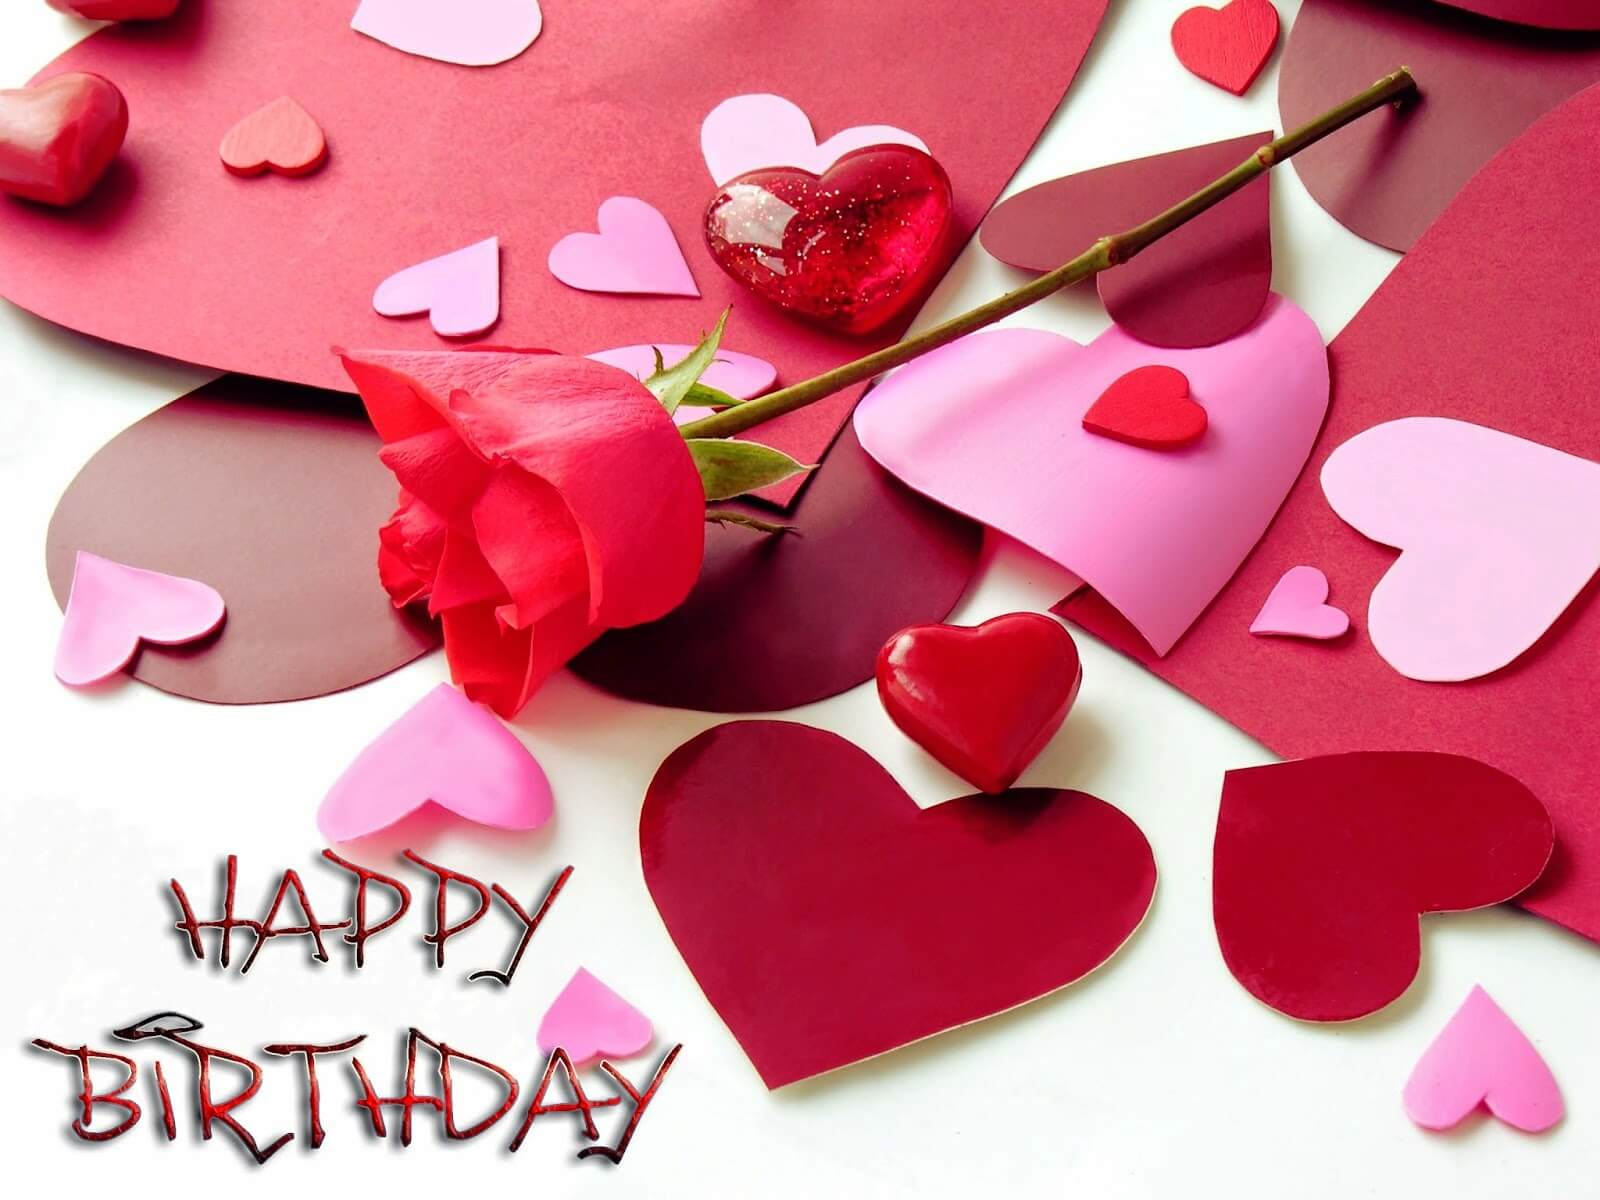 birthday greeting pictures for lover ; special-happy-birthday-wishes-lover-2